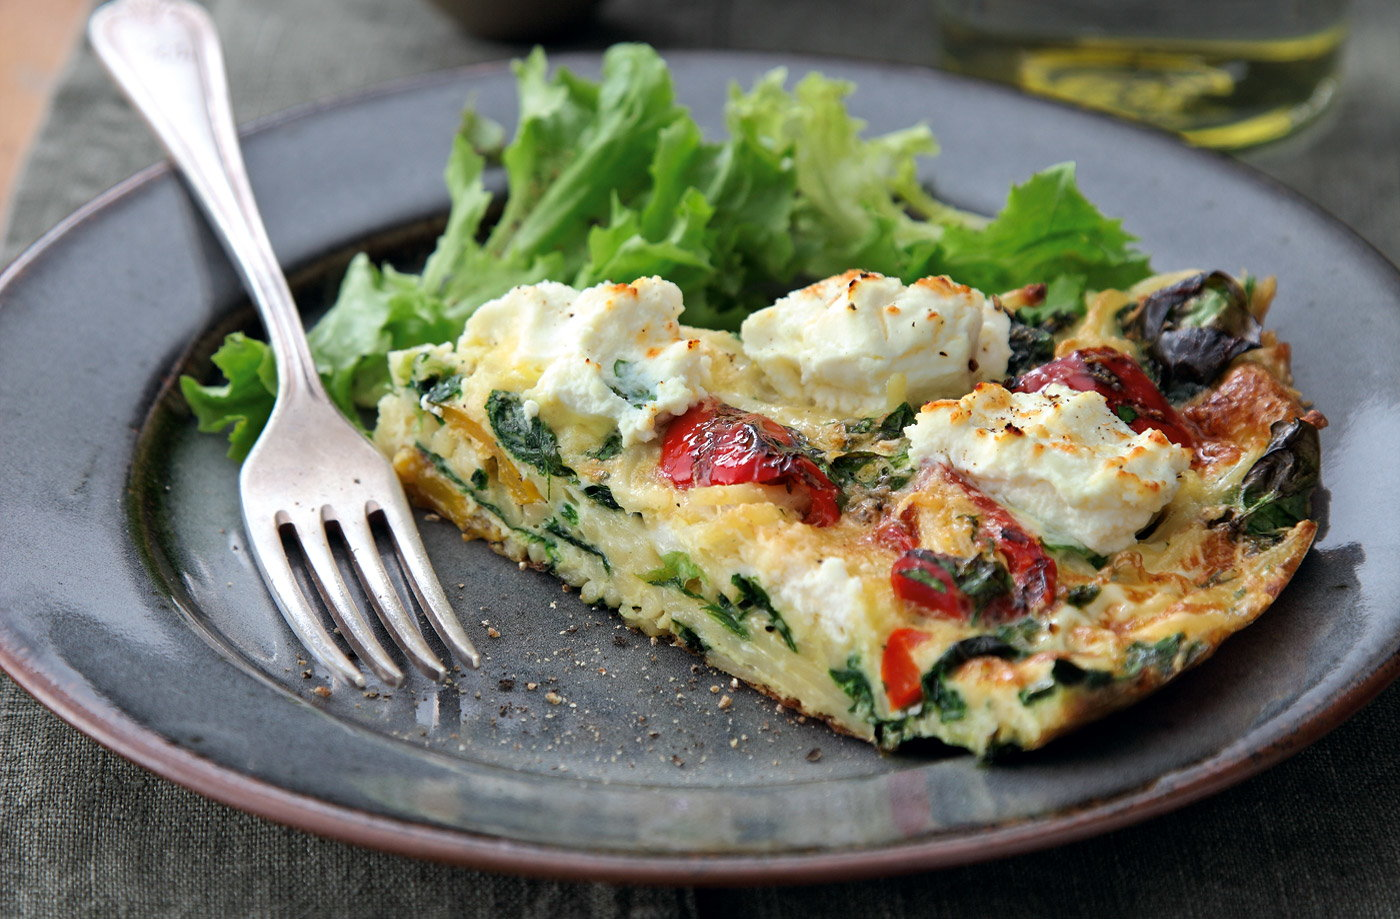 Italian frittata with spinach, pasta and ricotta